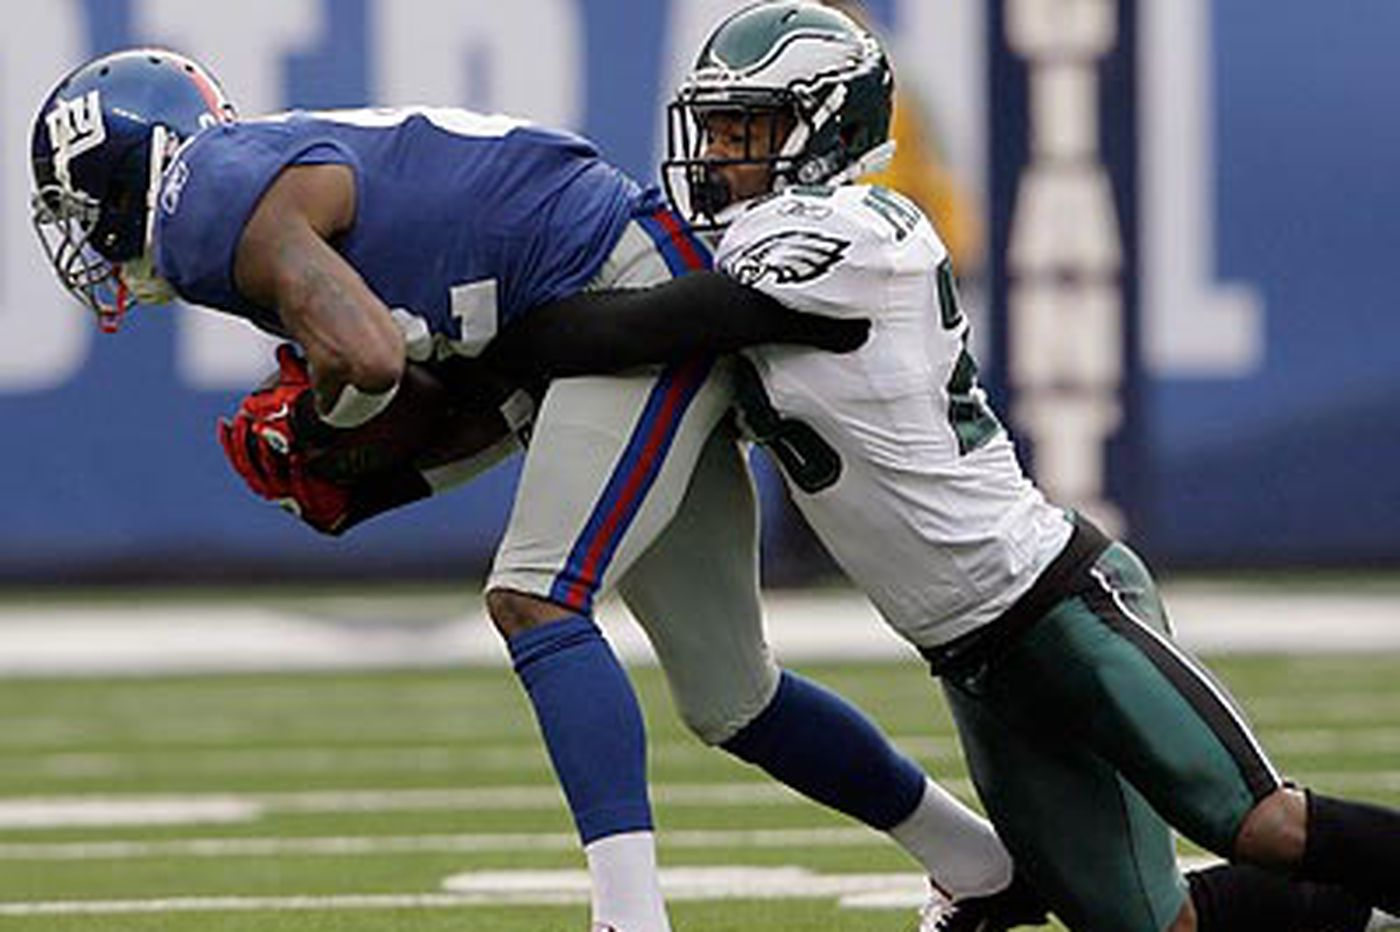 Eagles defense also played a key role in epic comeback